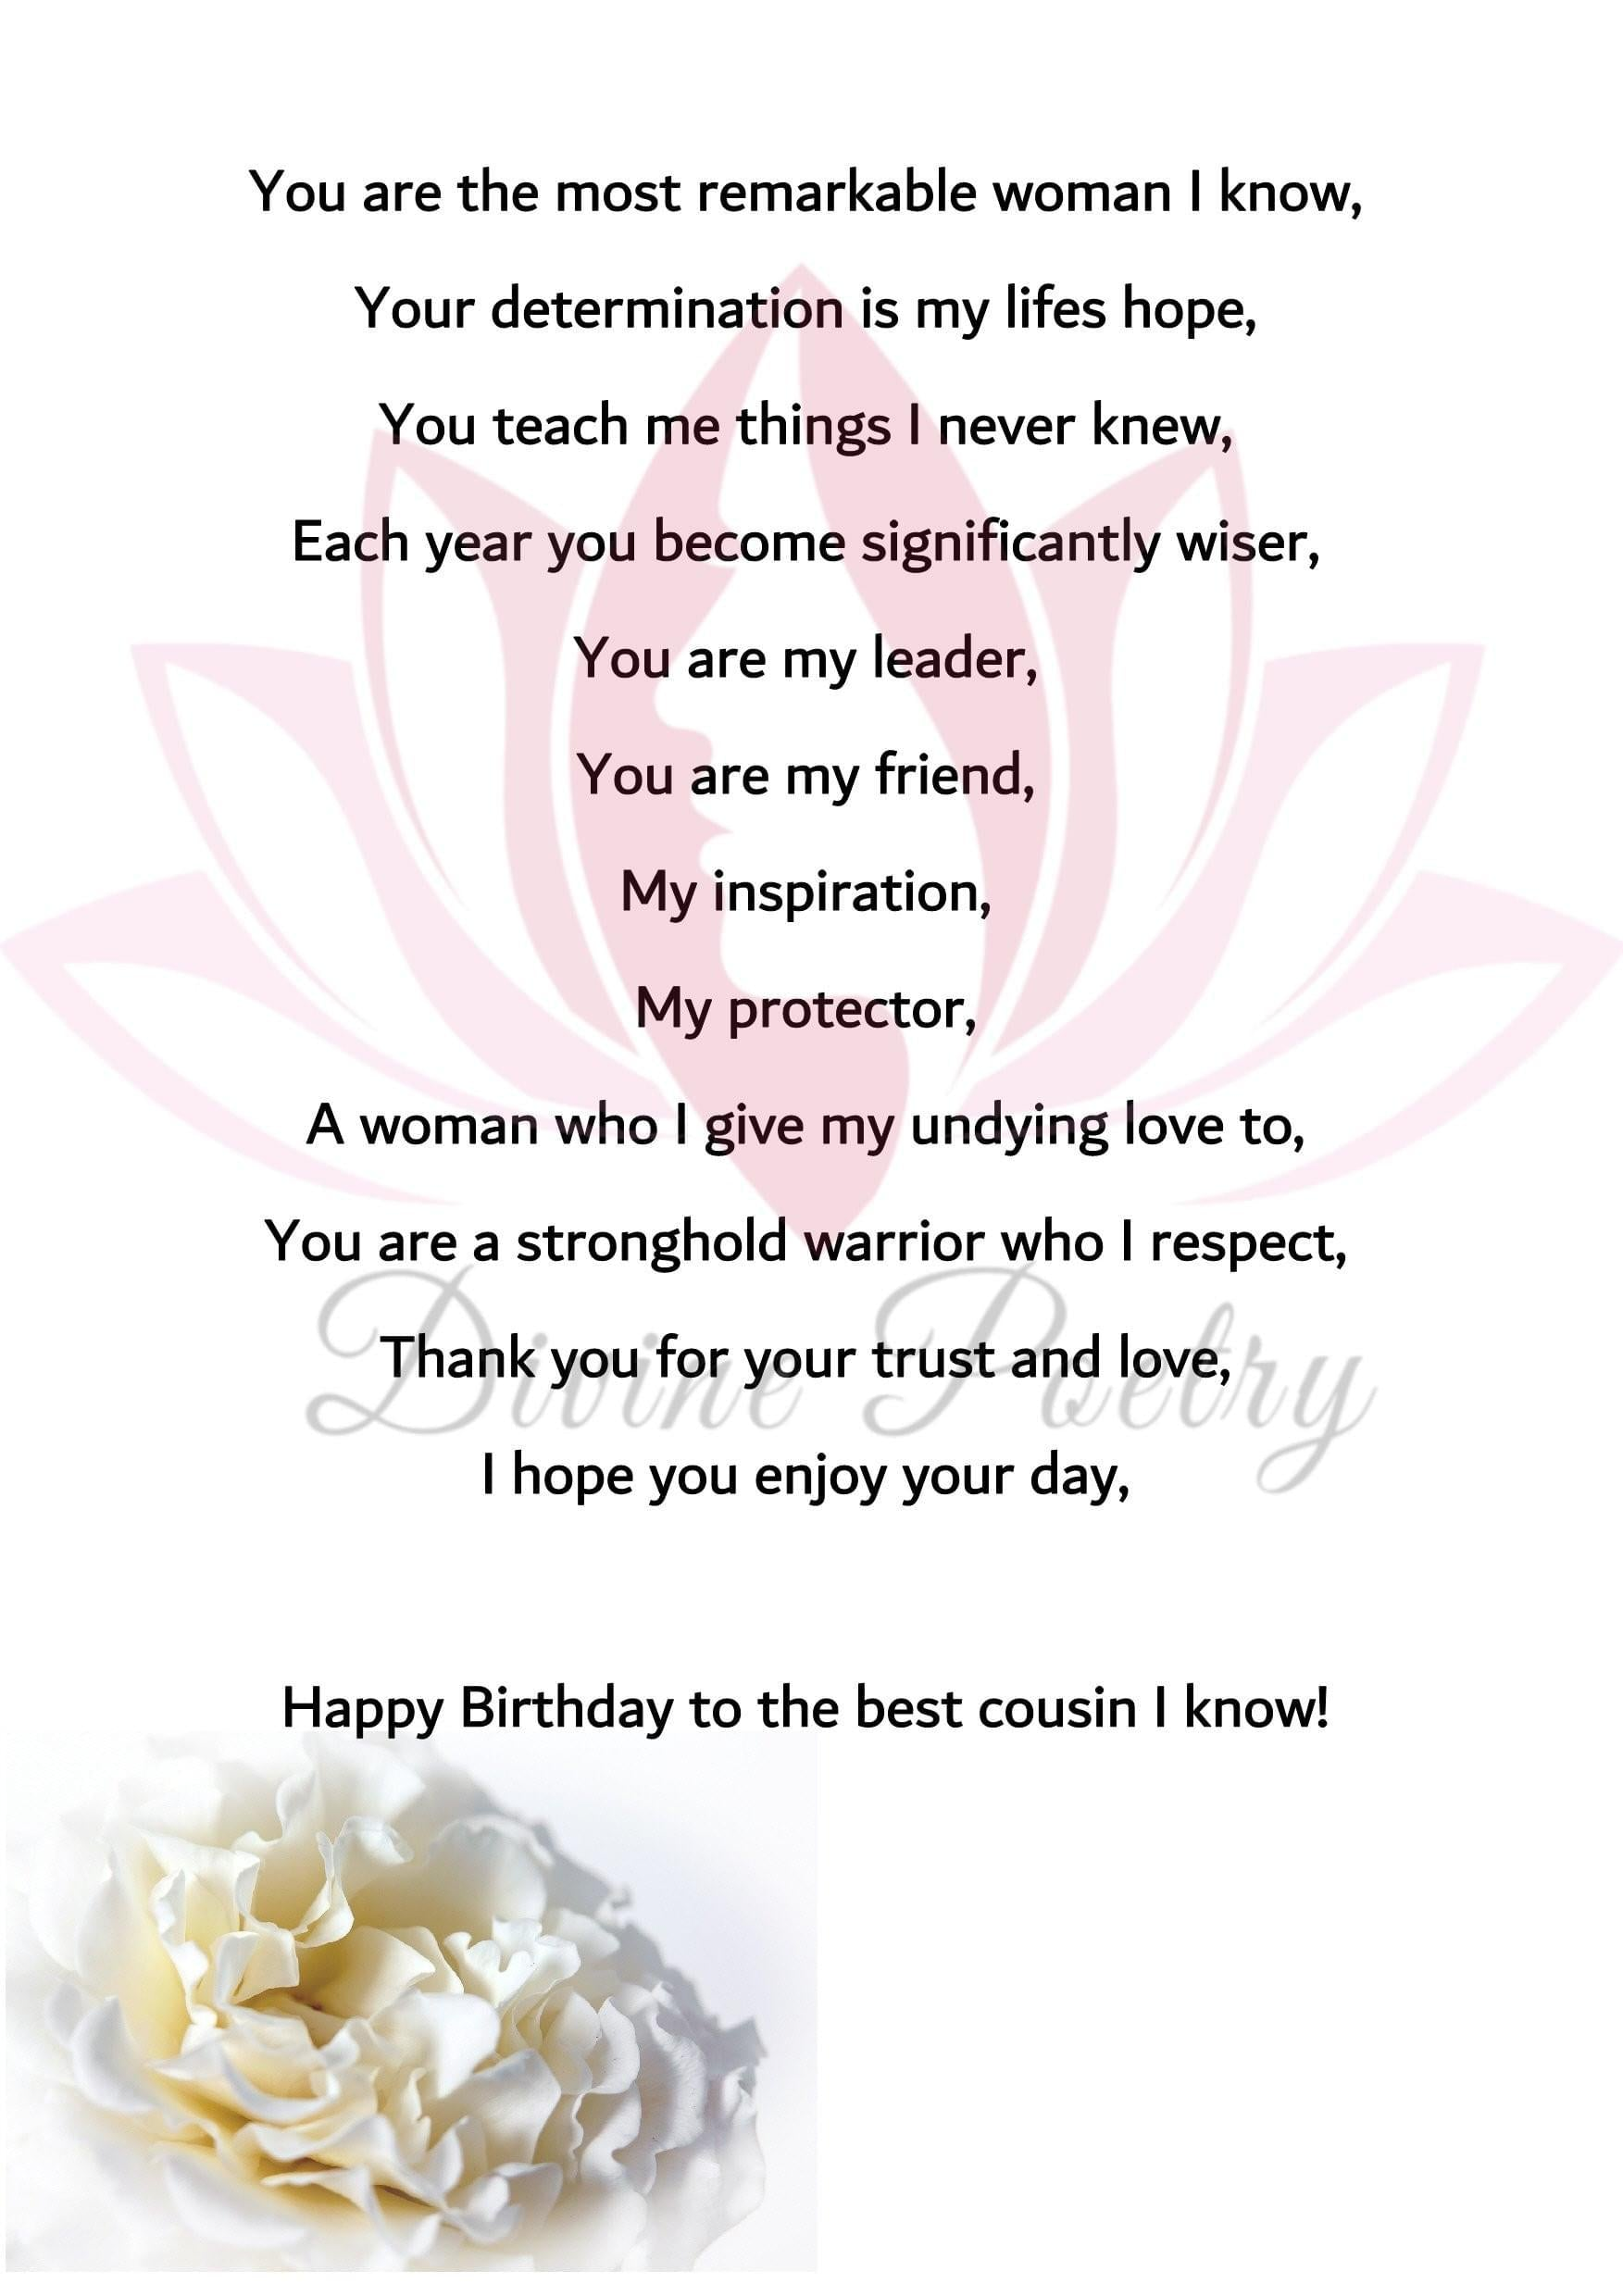 Happy Birthday Cousin - Divine Poetry